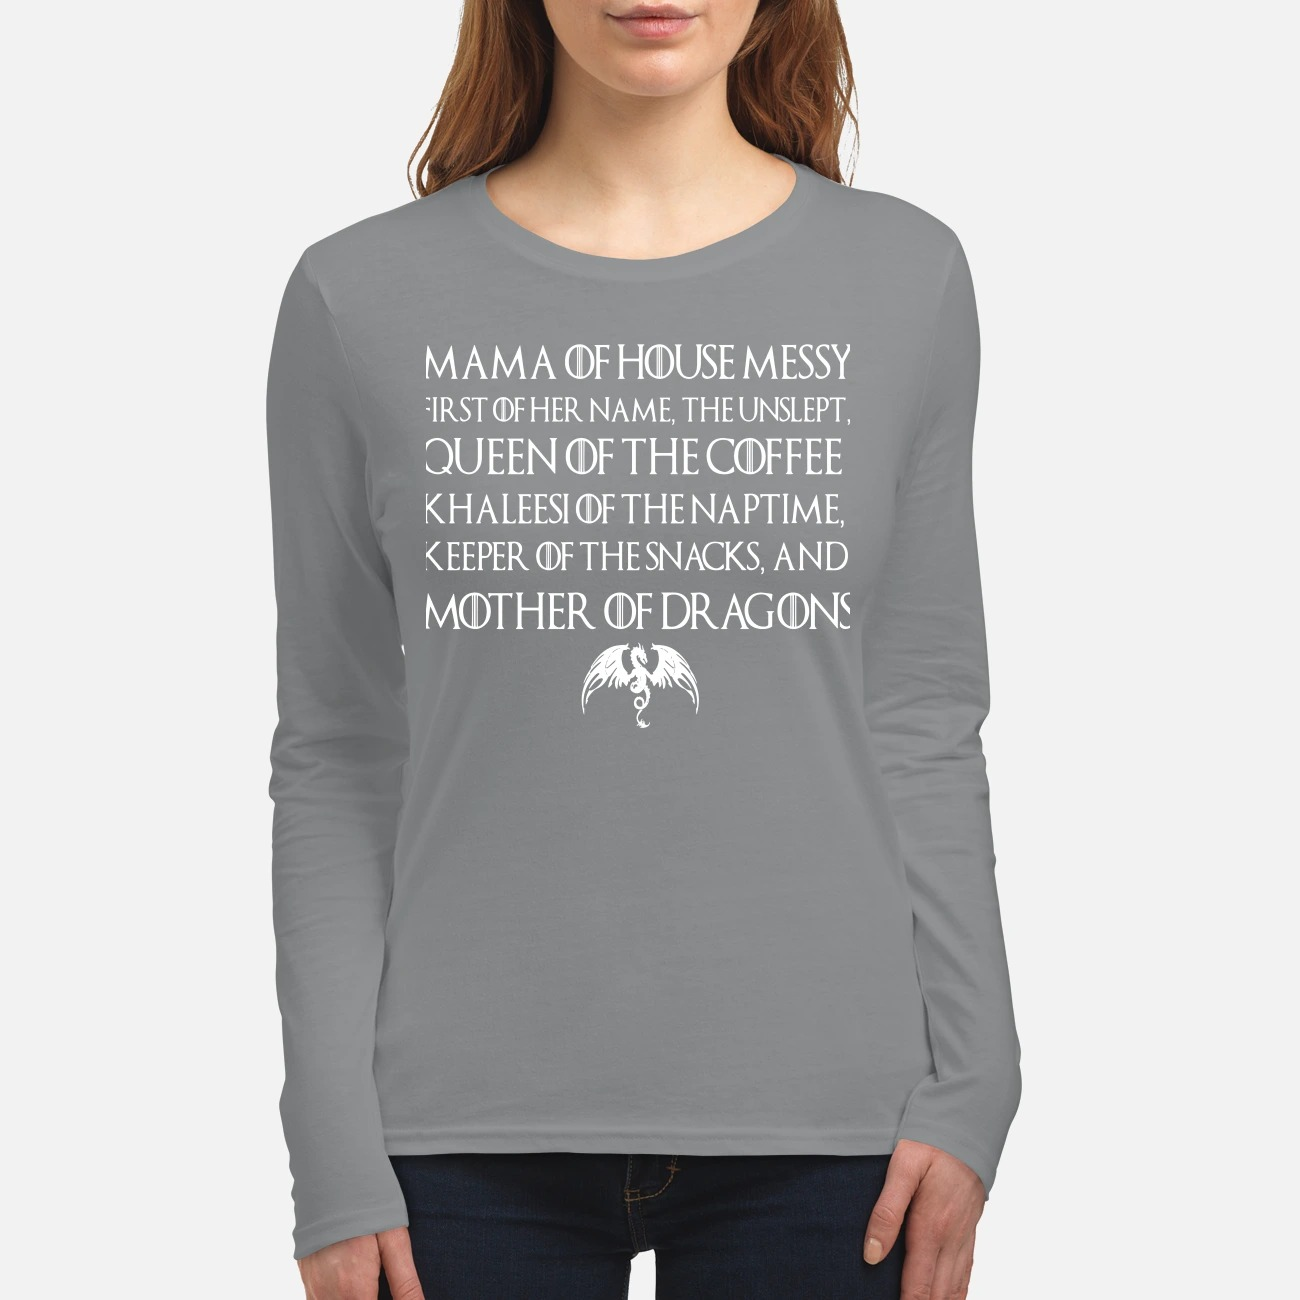 Game of Thrones Mama of house messy first of her name the unslept queen of the coffee women's long sleeved shirt